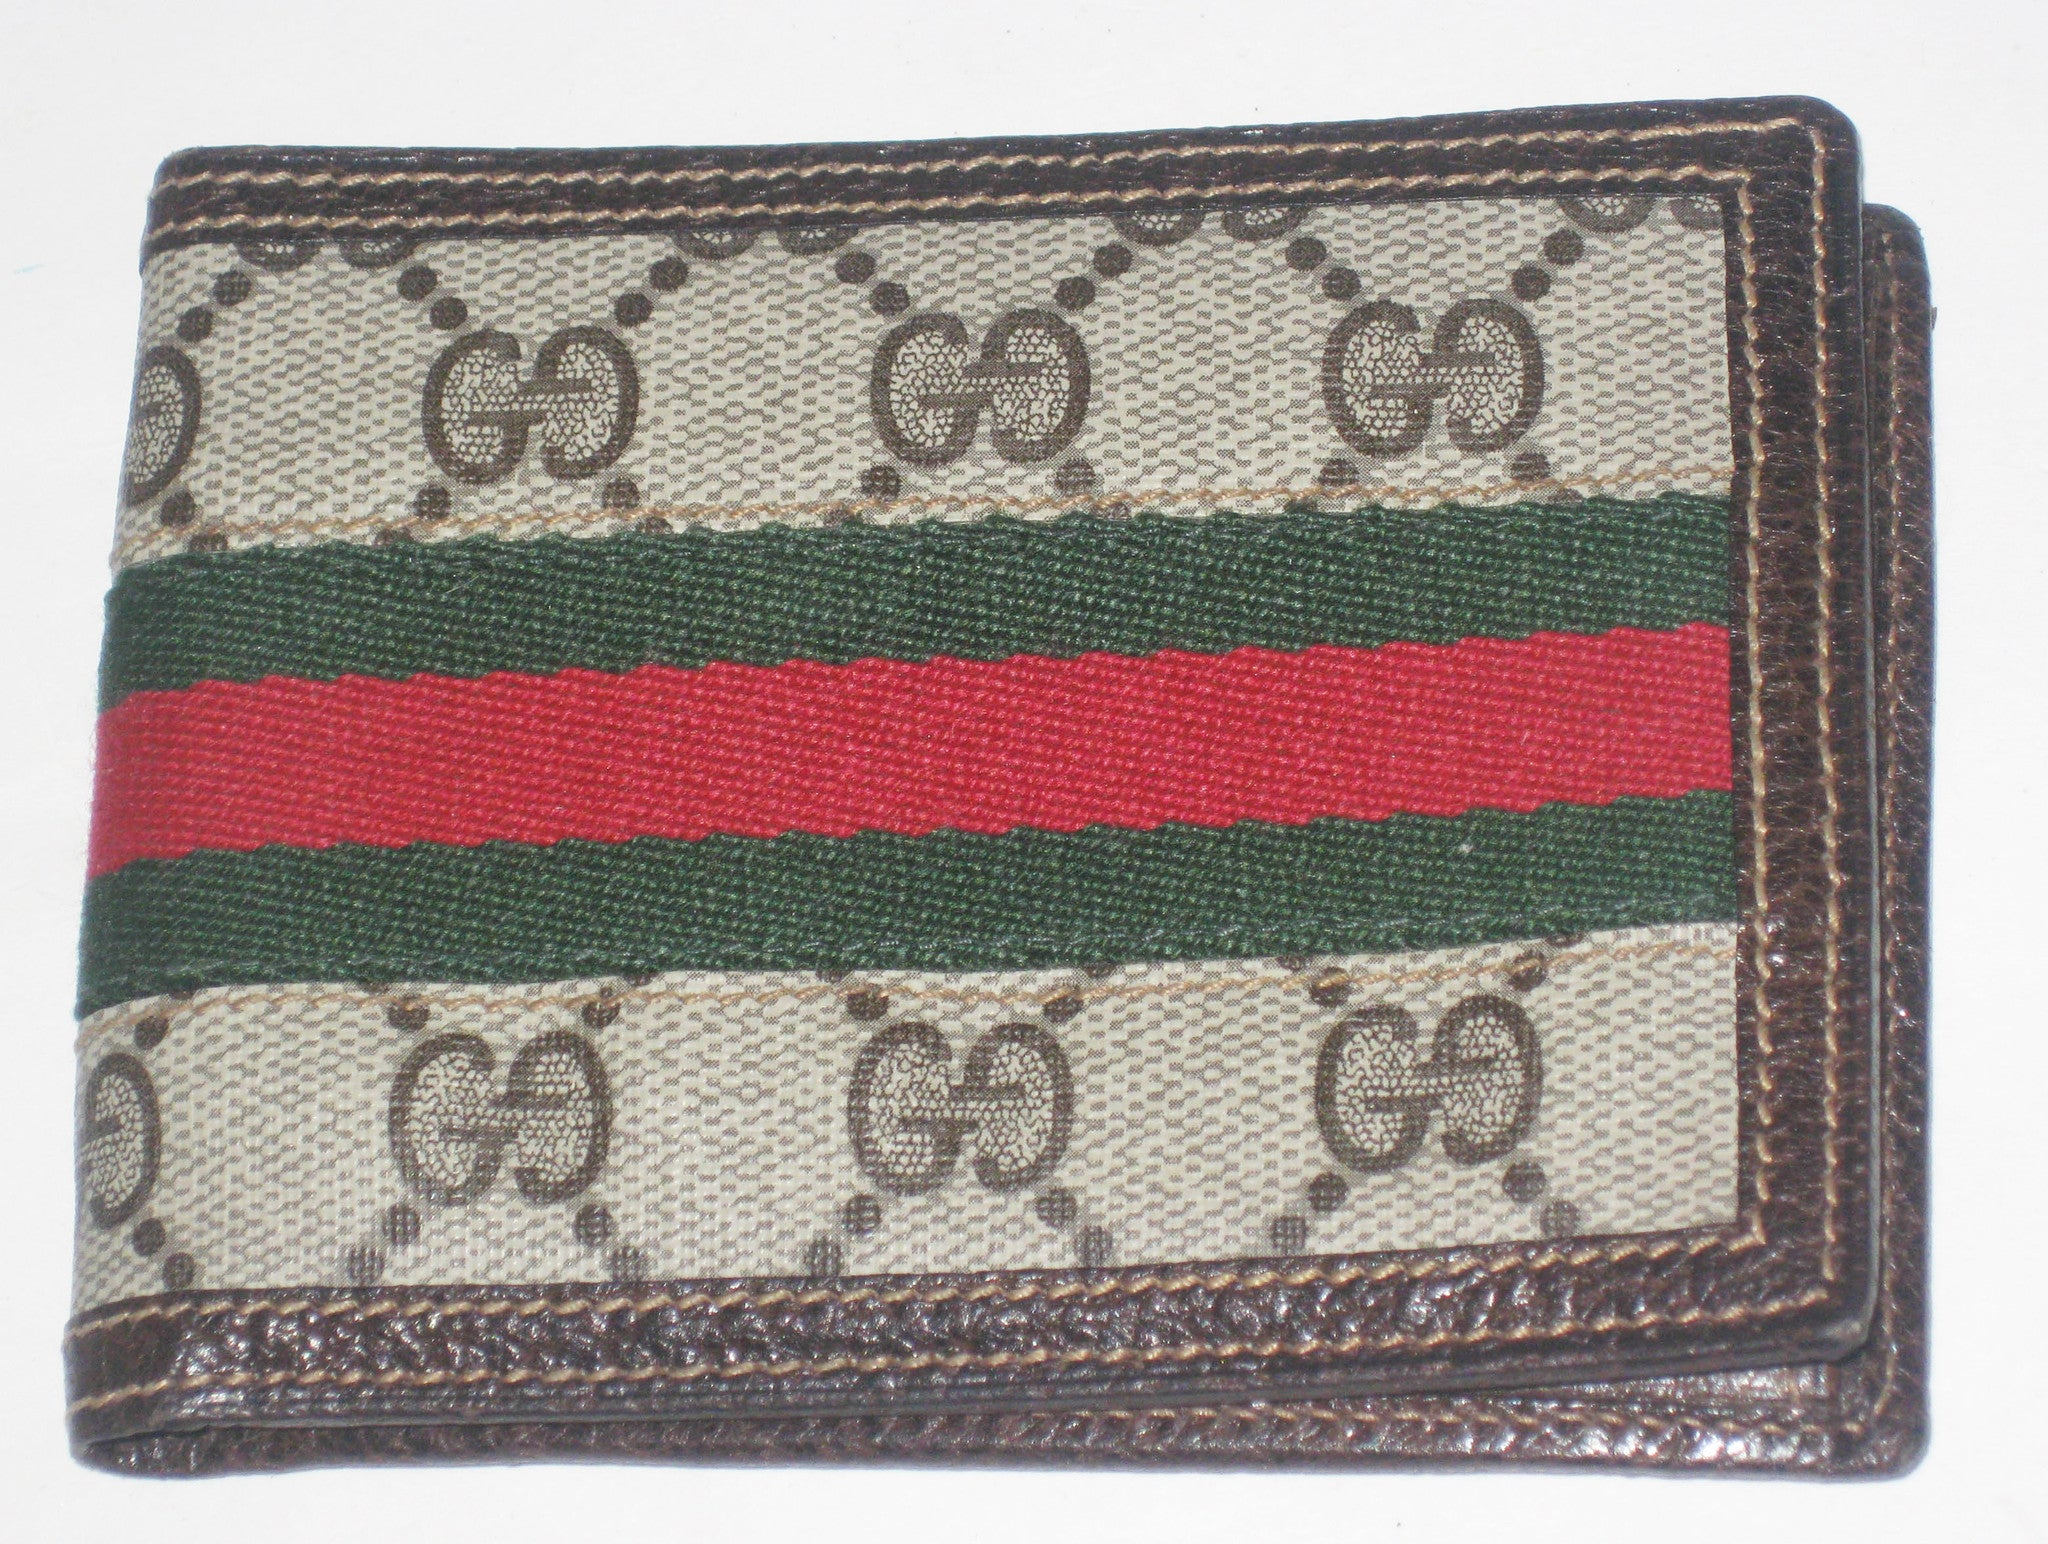 Vintage Gucci Monogram Billfold Wallet